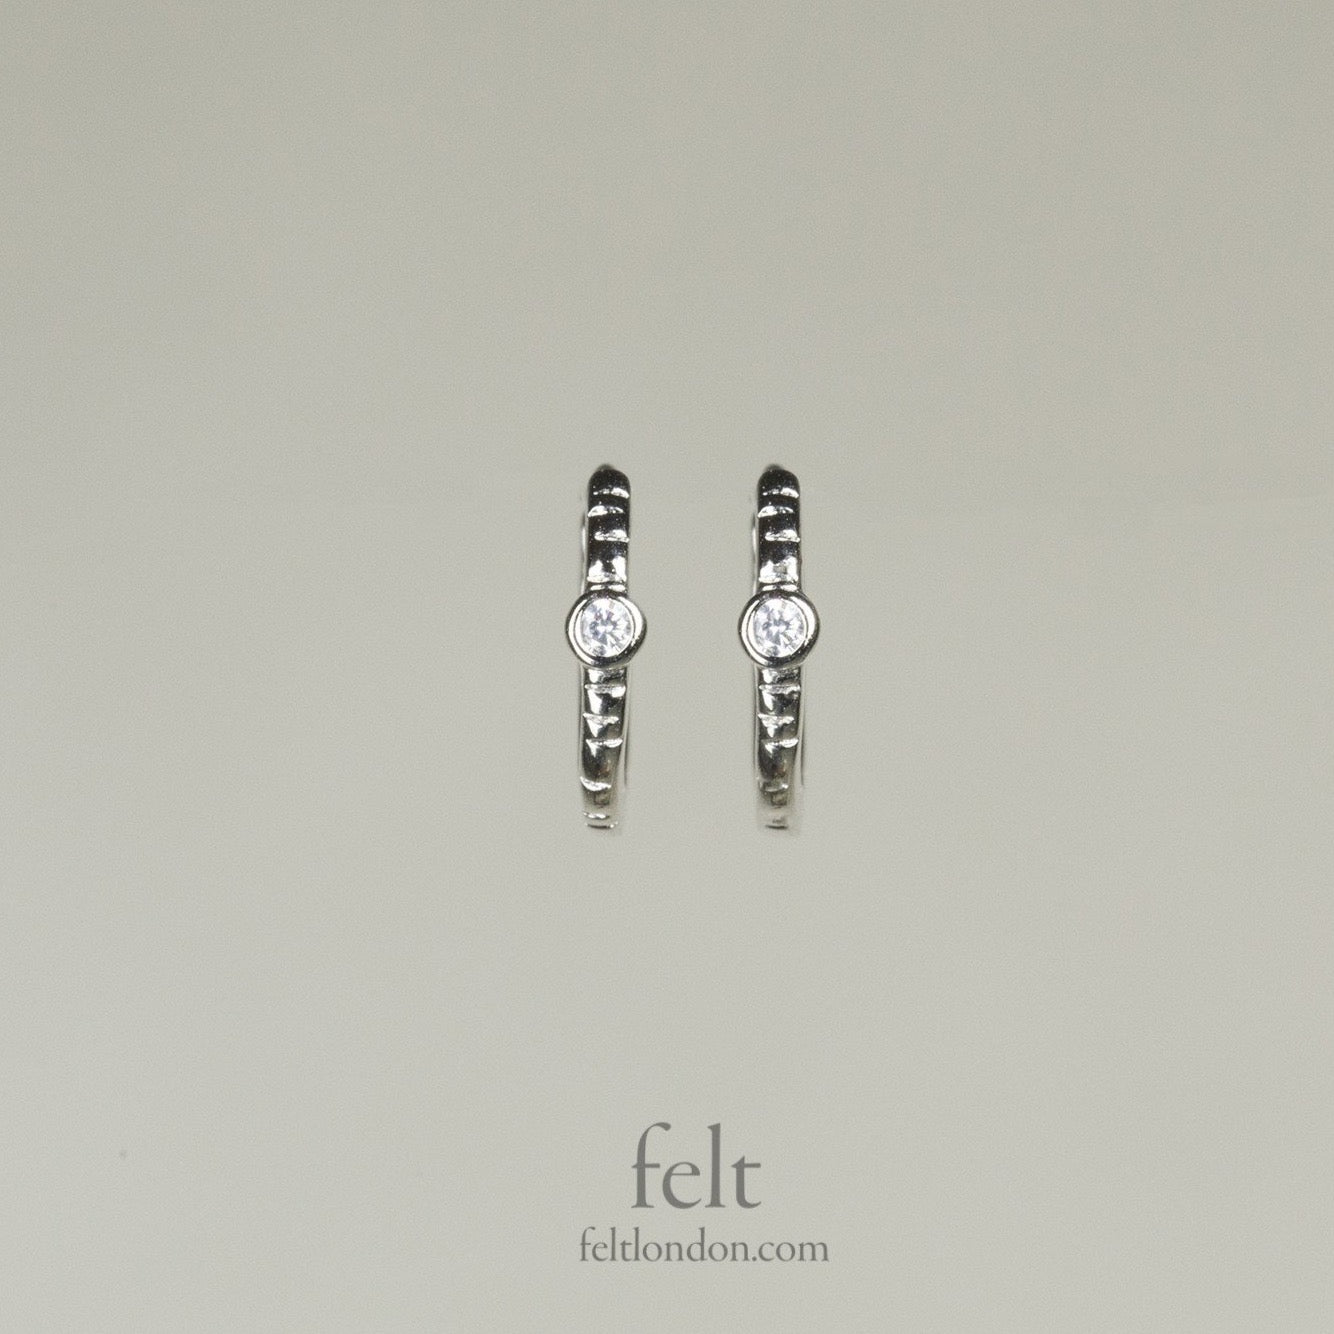 Single stone sleepers in sterling silver with a single cubic zirconia